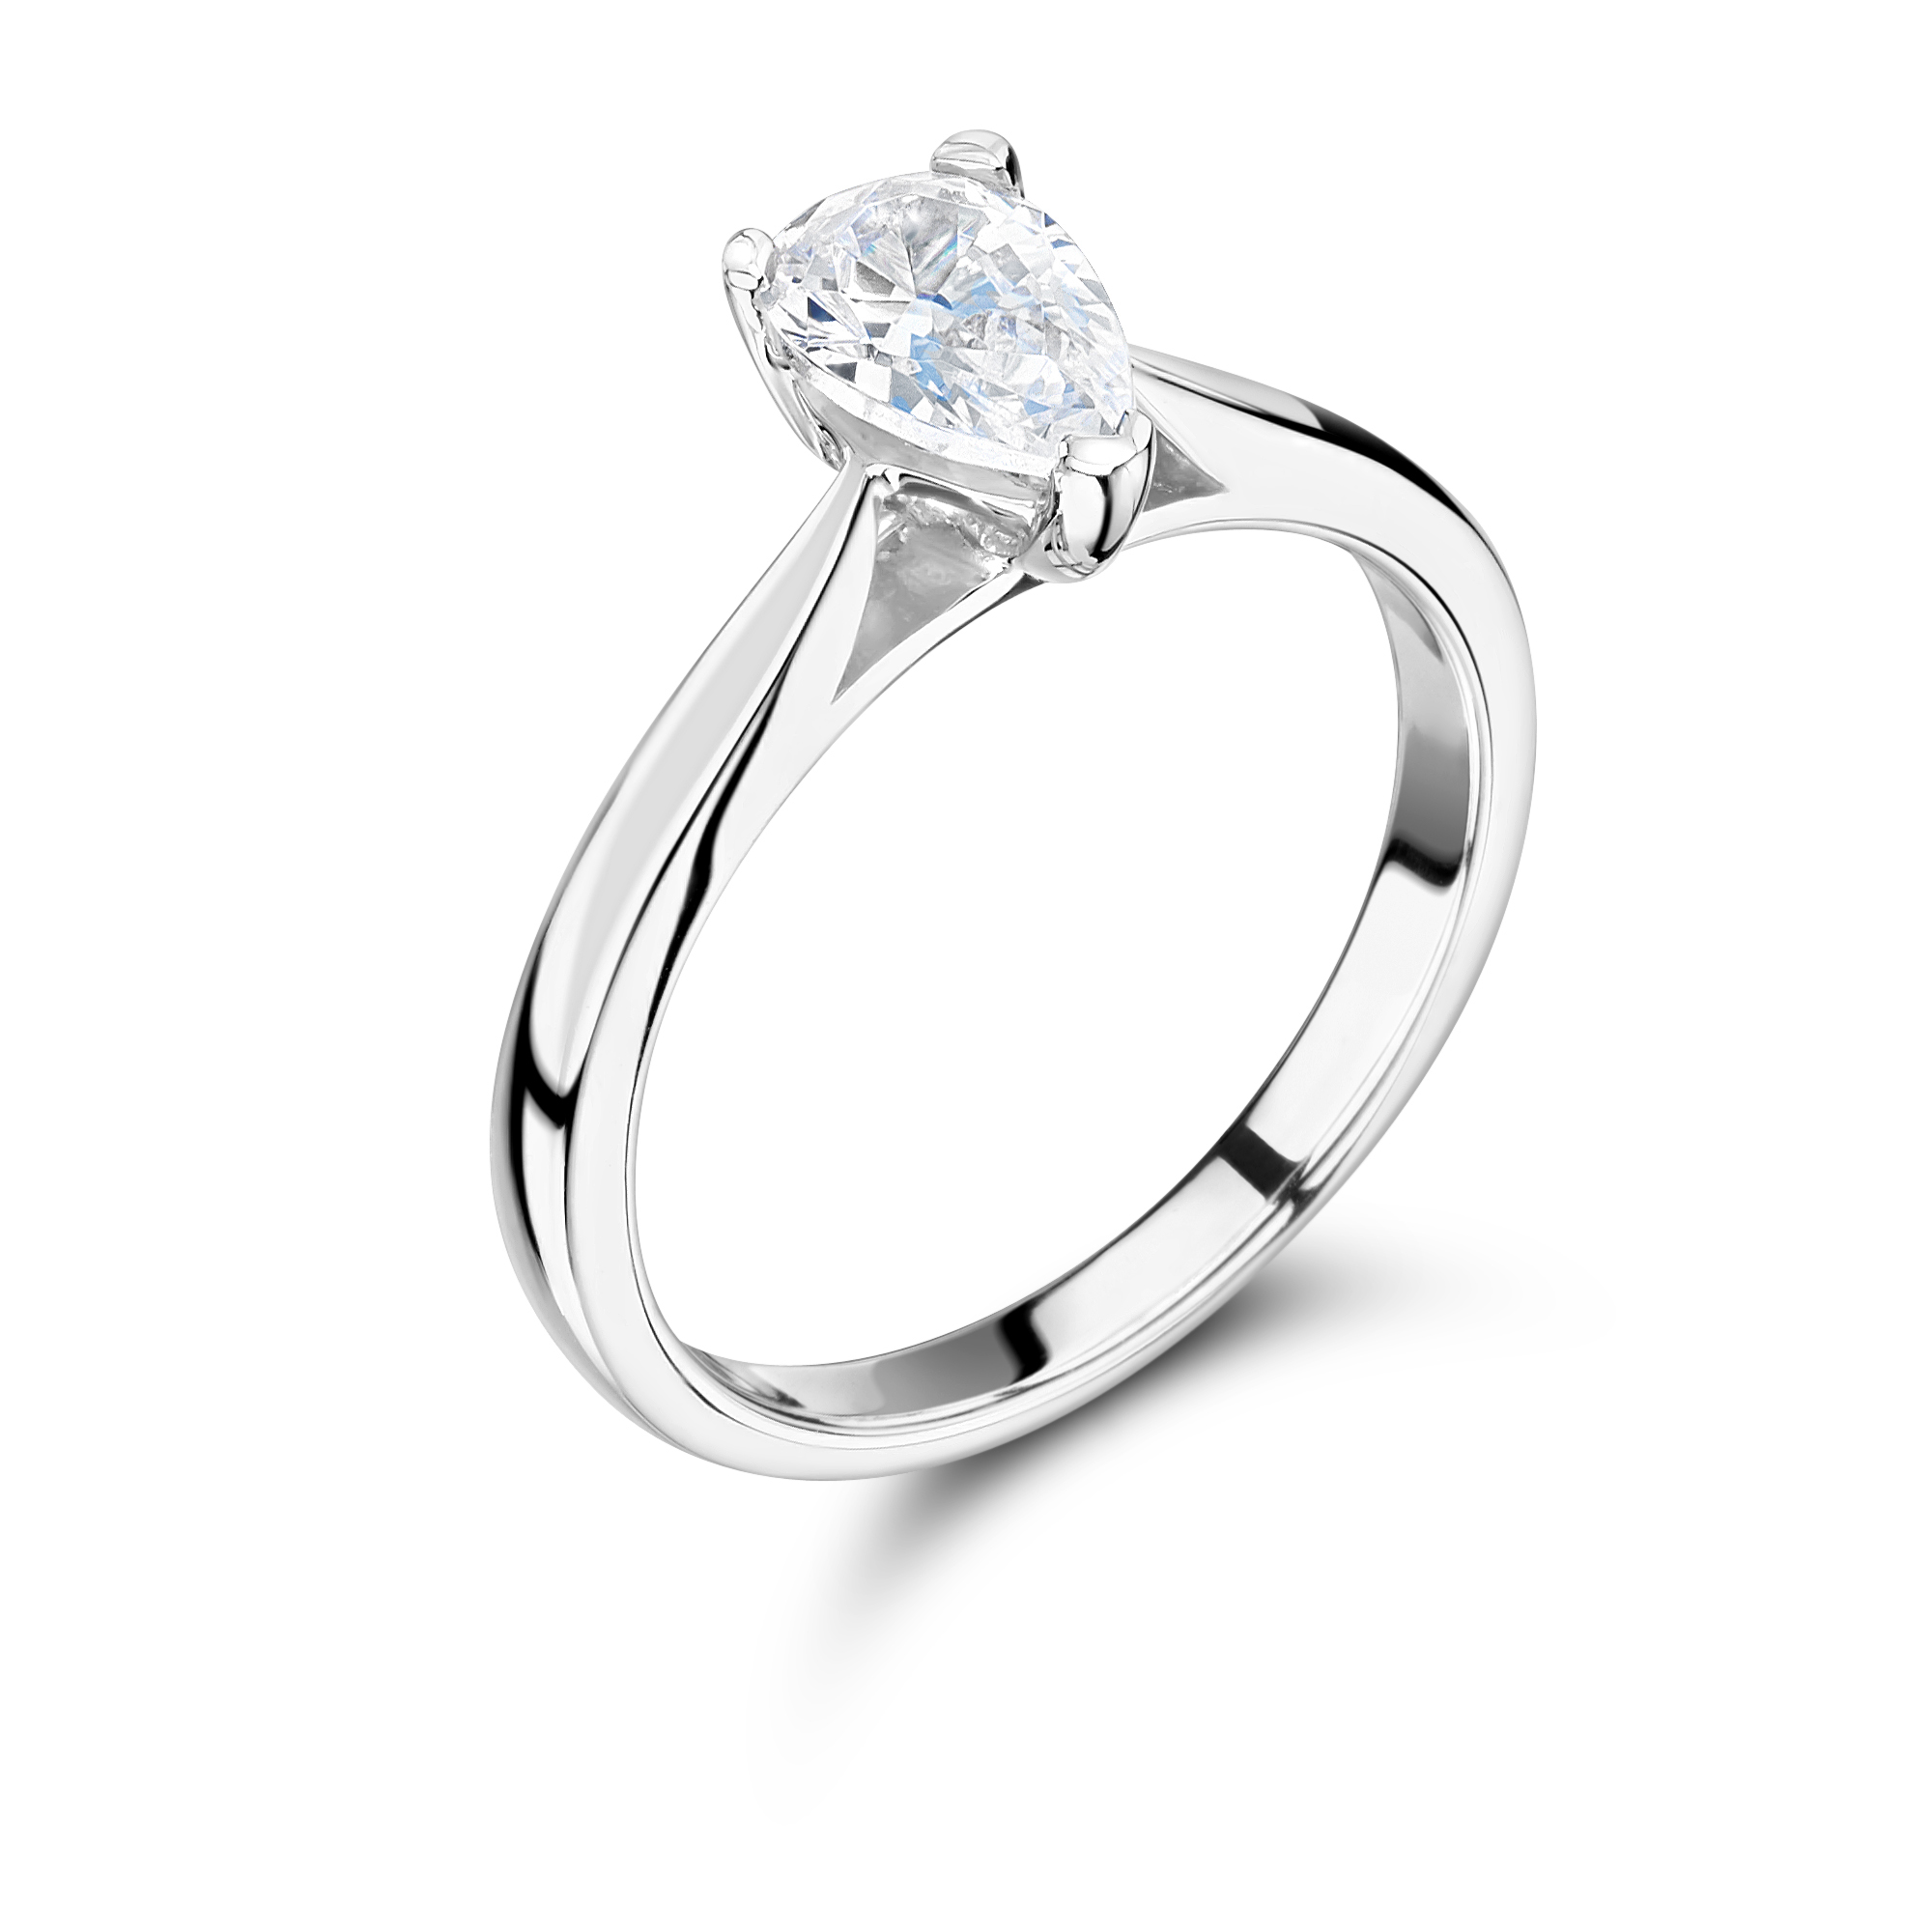 shape w baguettes engagement diamond pear shaped rounds ring